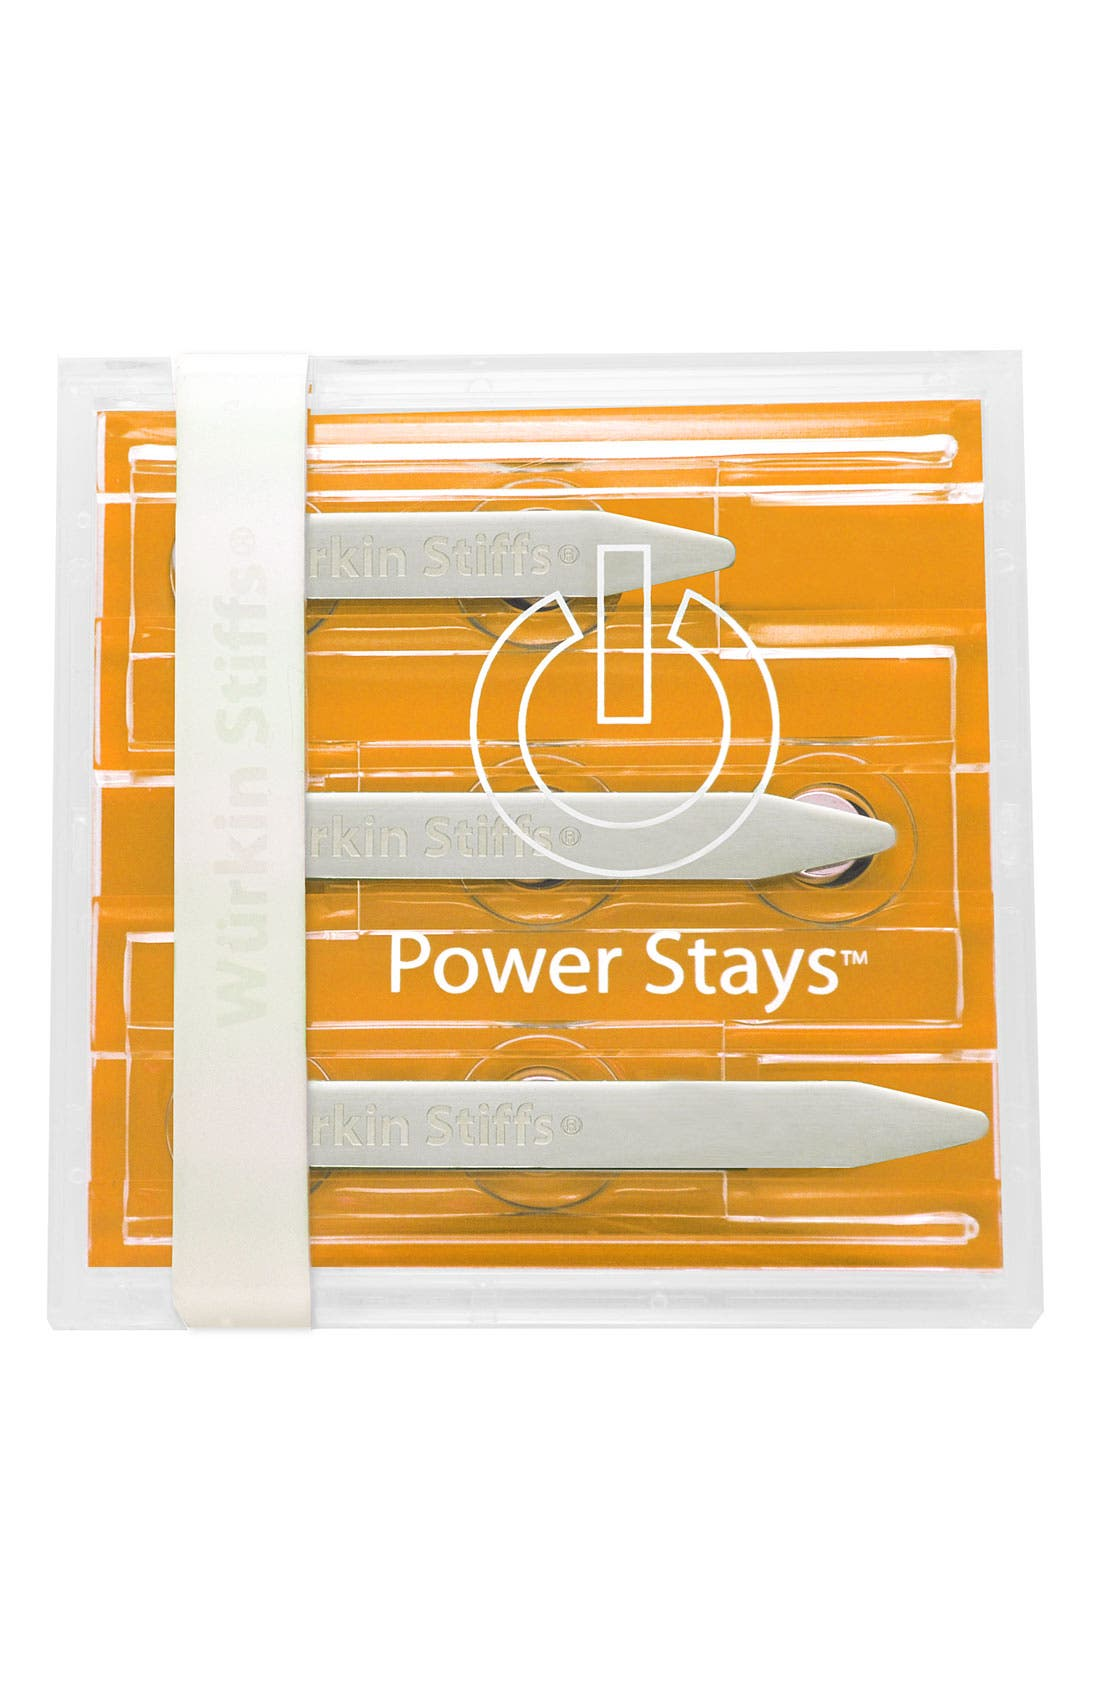 Würkin Stiffs 'Power' Stays (6-Piece Set)